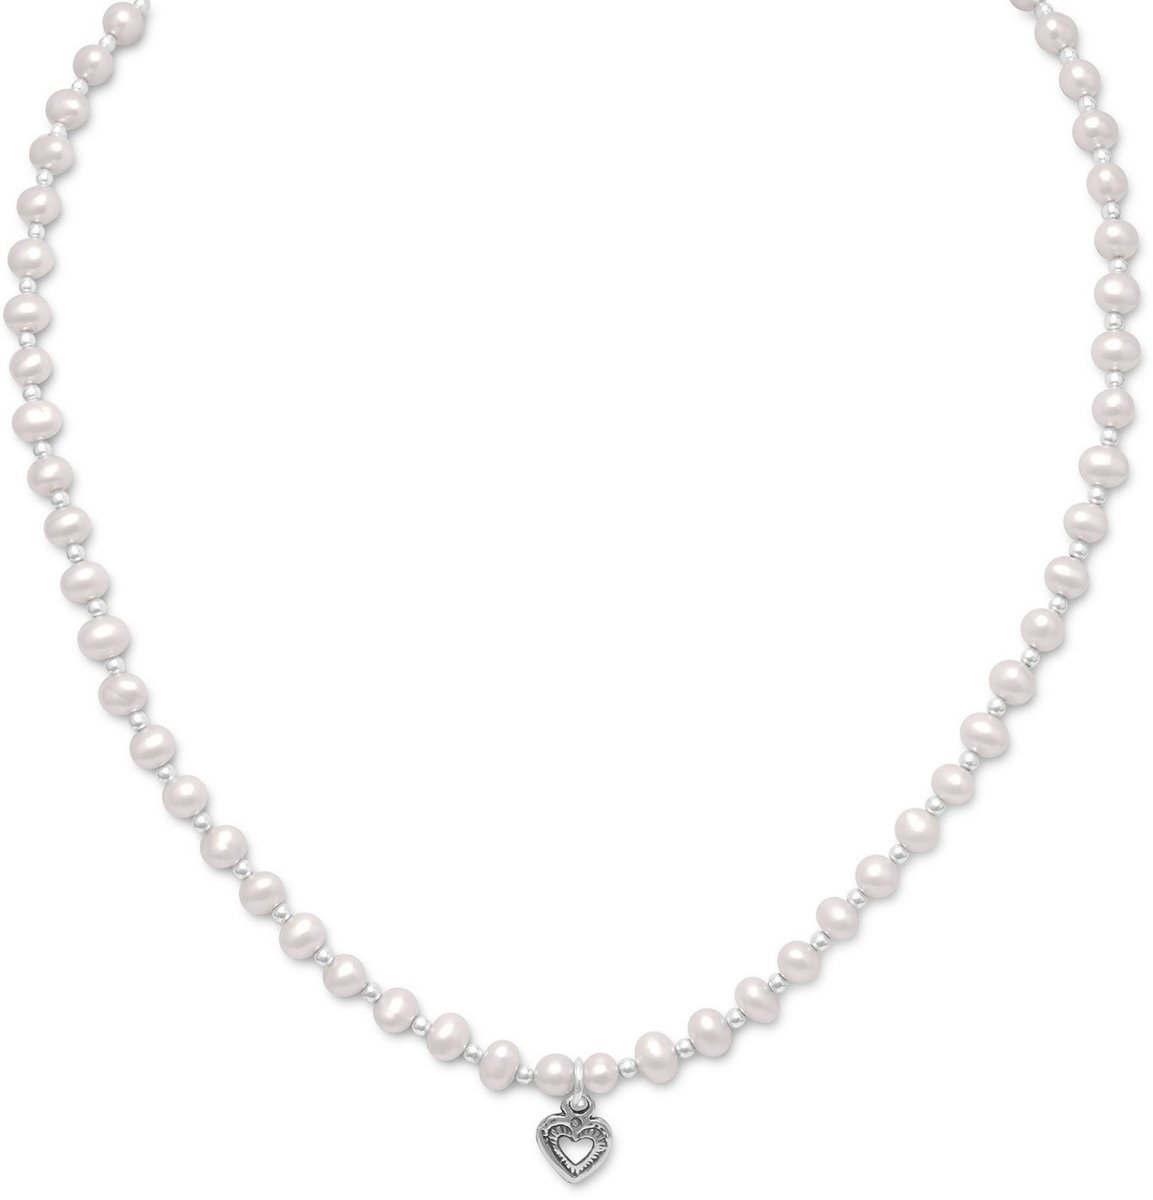 "13""+2"" Extension Cultured Freshwater Pearl/Silver Bead Necklace with Oxidized Heart 925 Sterling Silver"